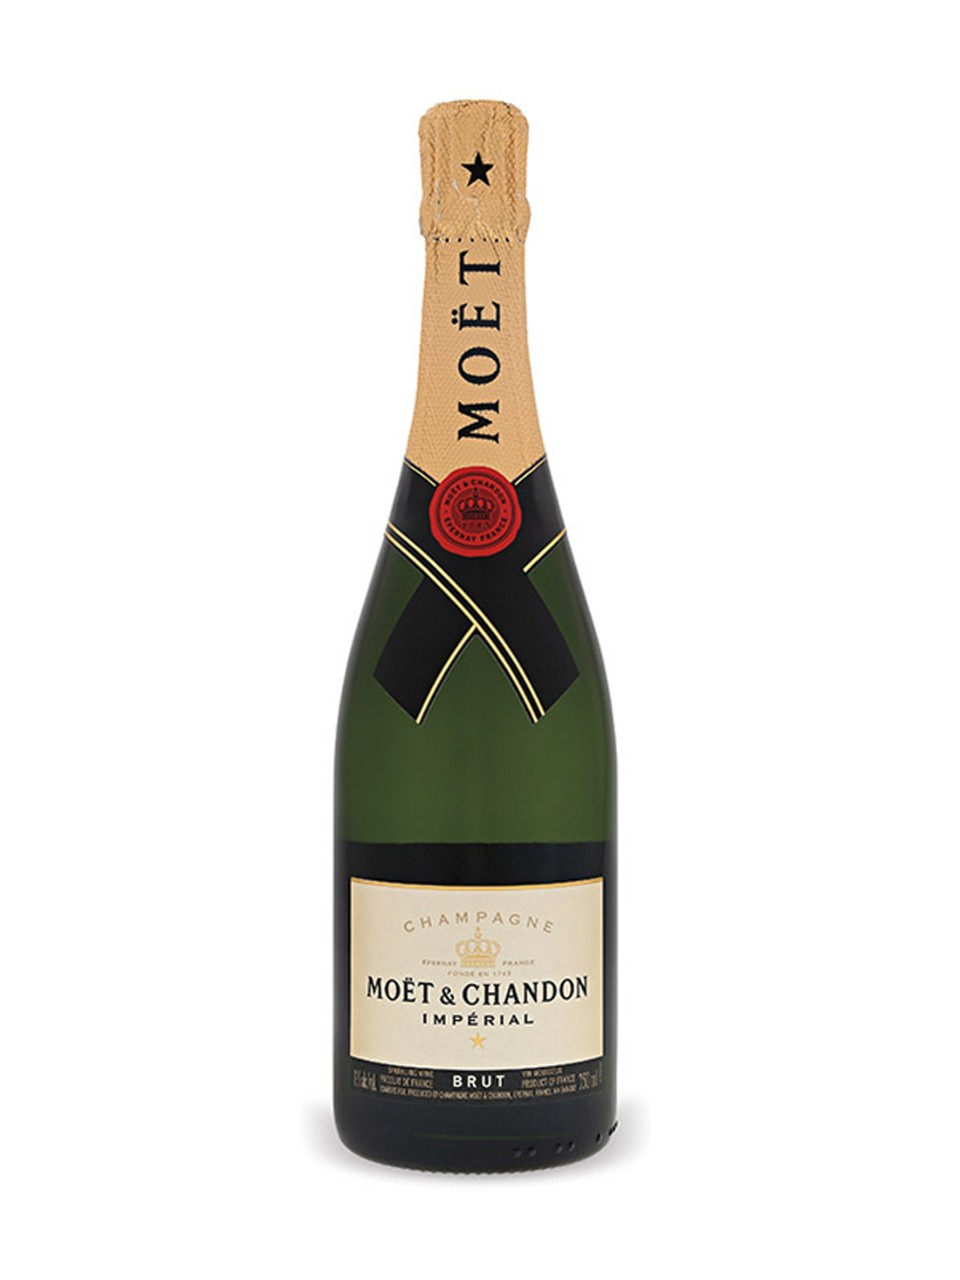 moet and chandon Have moet & chandon imperial brut champagne delivered to your door in under an hour drizly partners with liquor stores near you to provide fast and easy alcohol delivery.